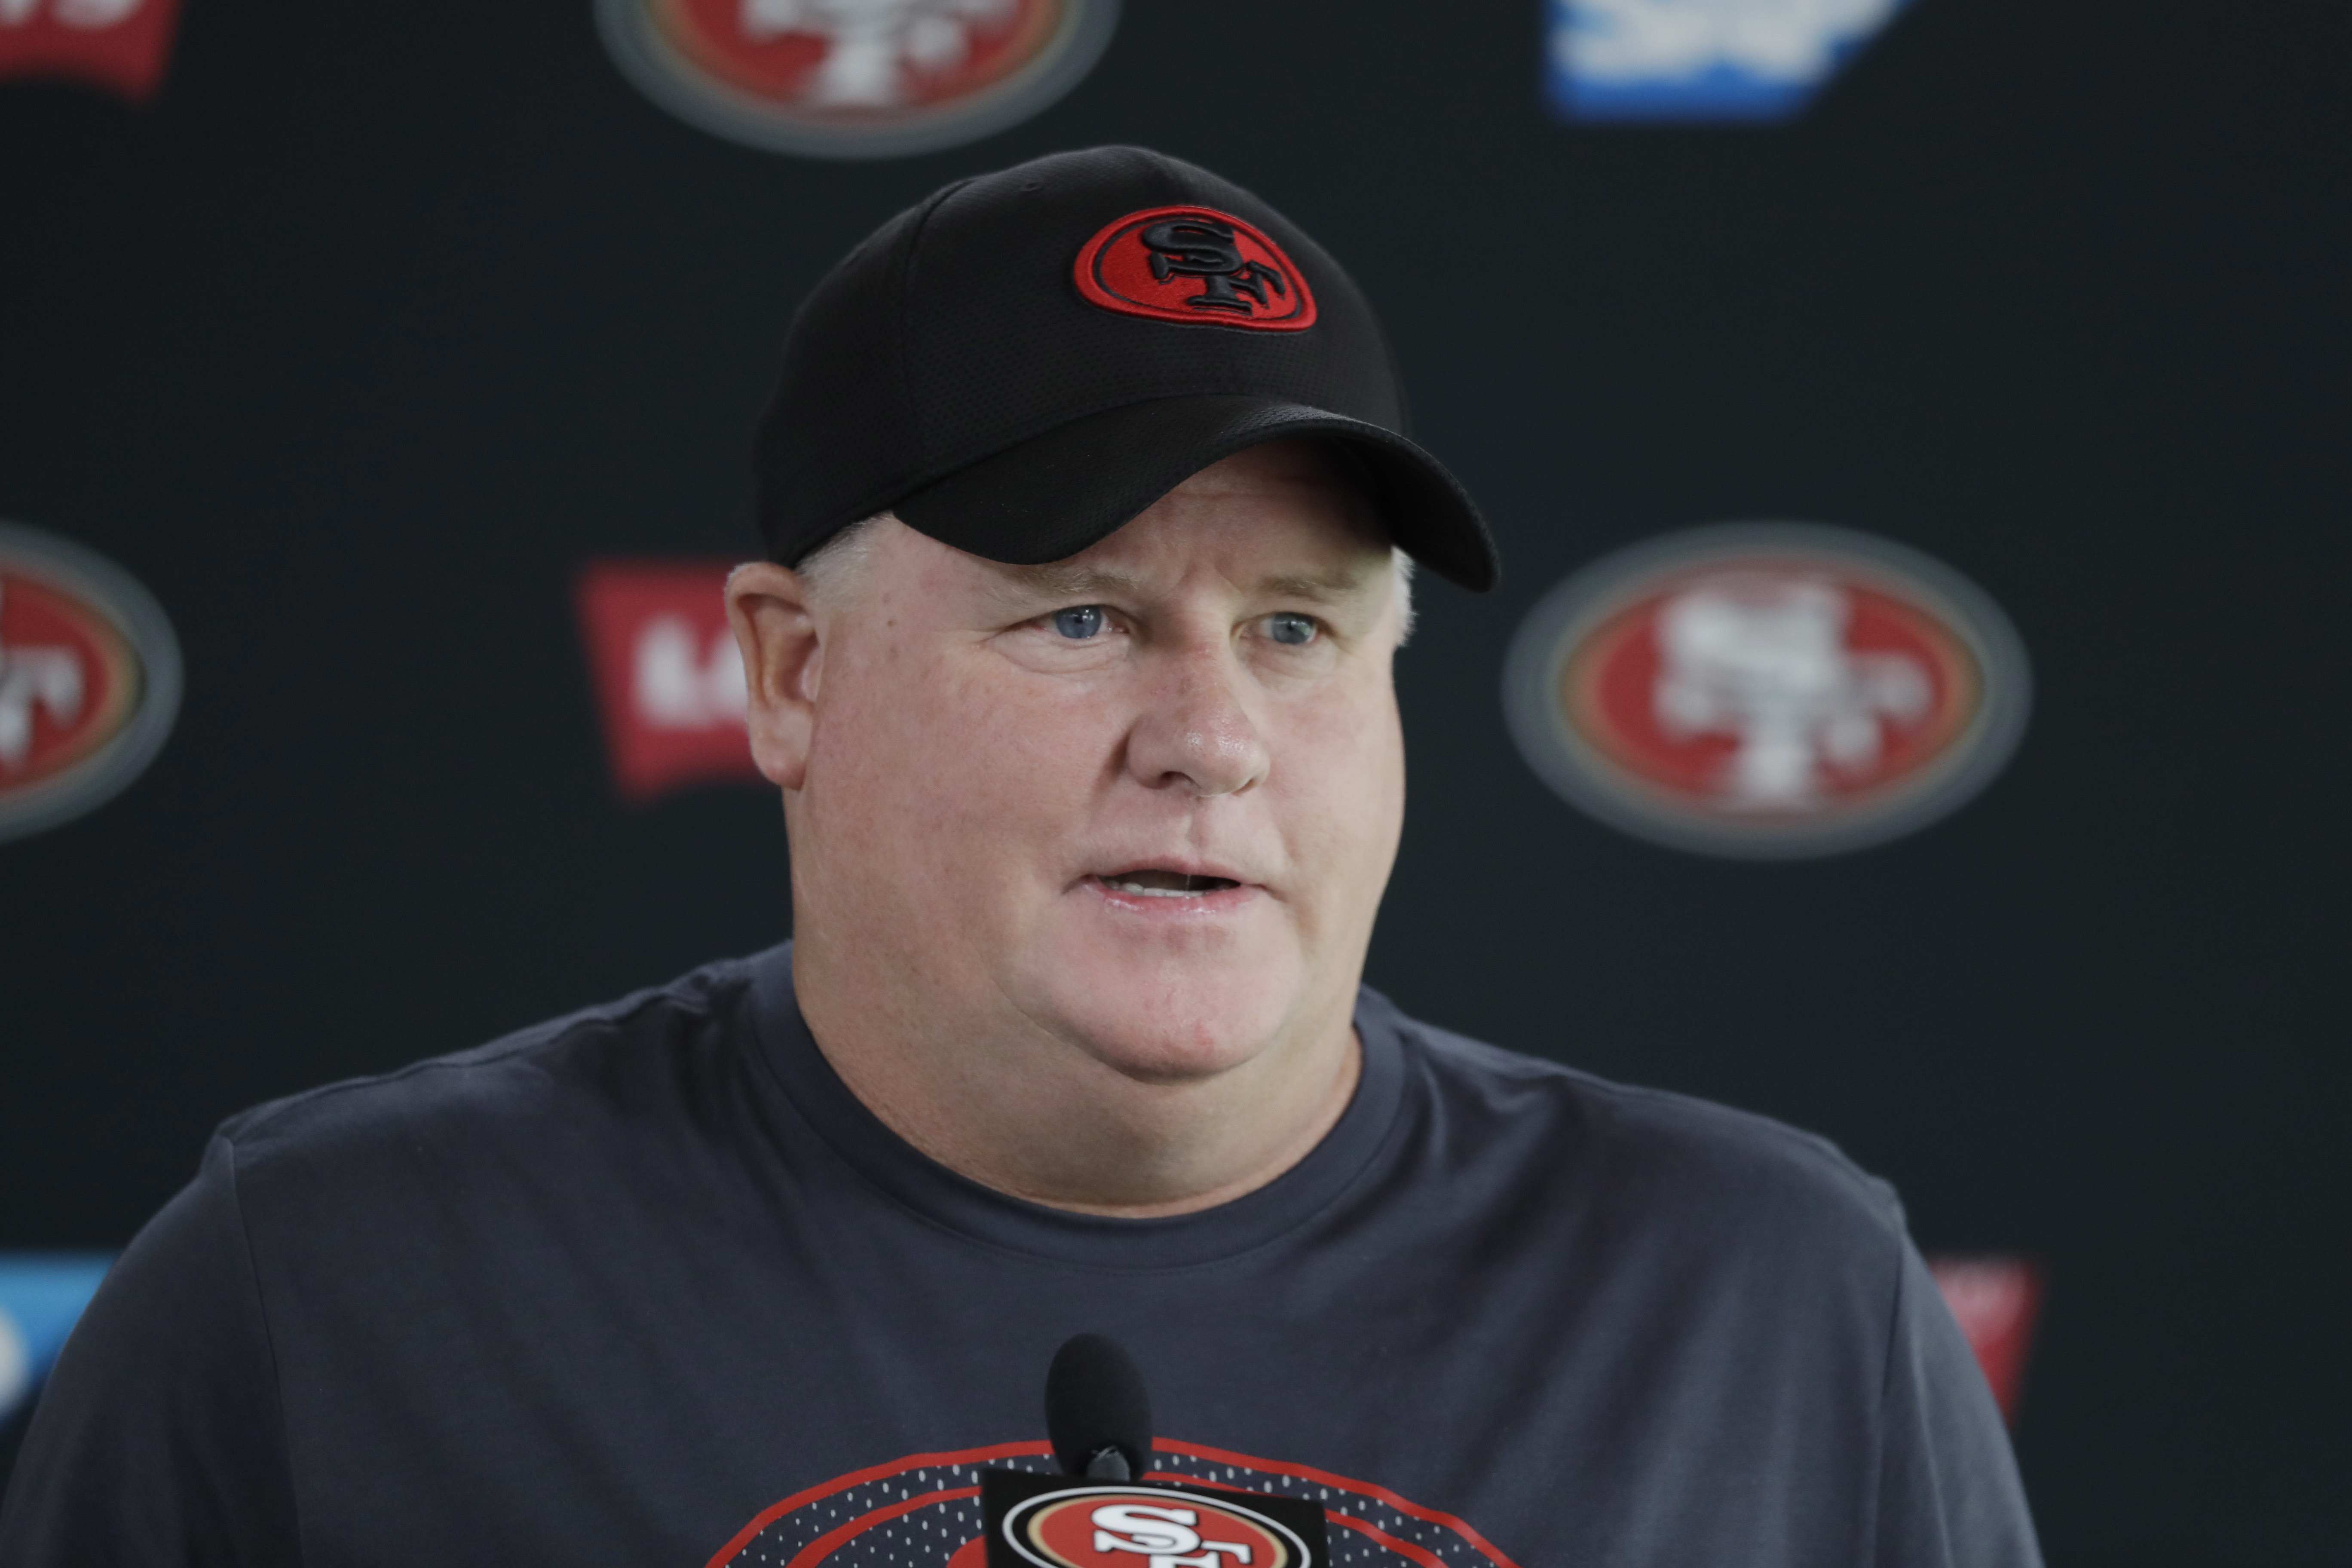 San Francisco 49ers head coach Chip Kelly fields questions during NFL football training camp Sunday, July 31, 2016, in Santa Clara, Calif. (AP Photo/Marcio Jose Sanchez)